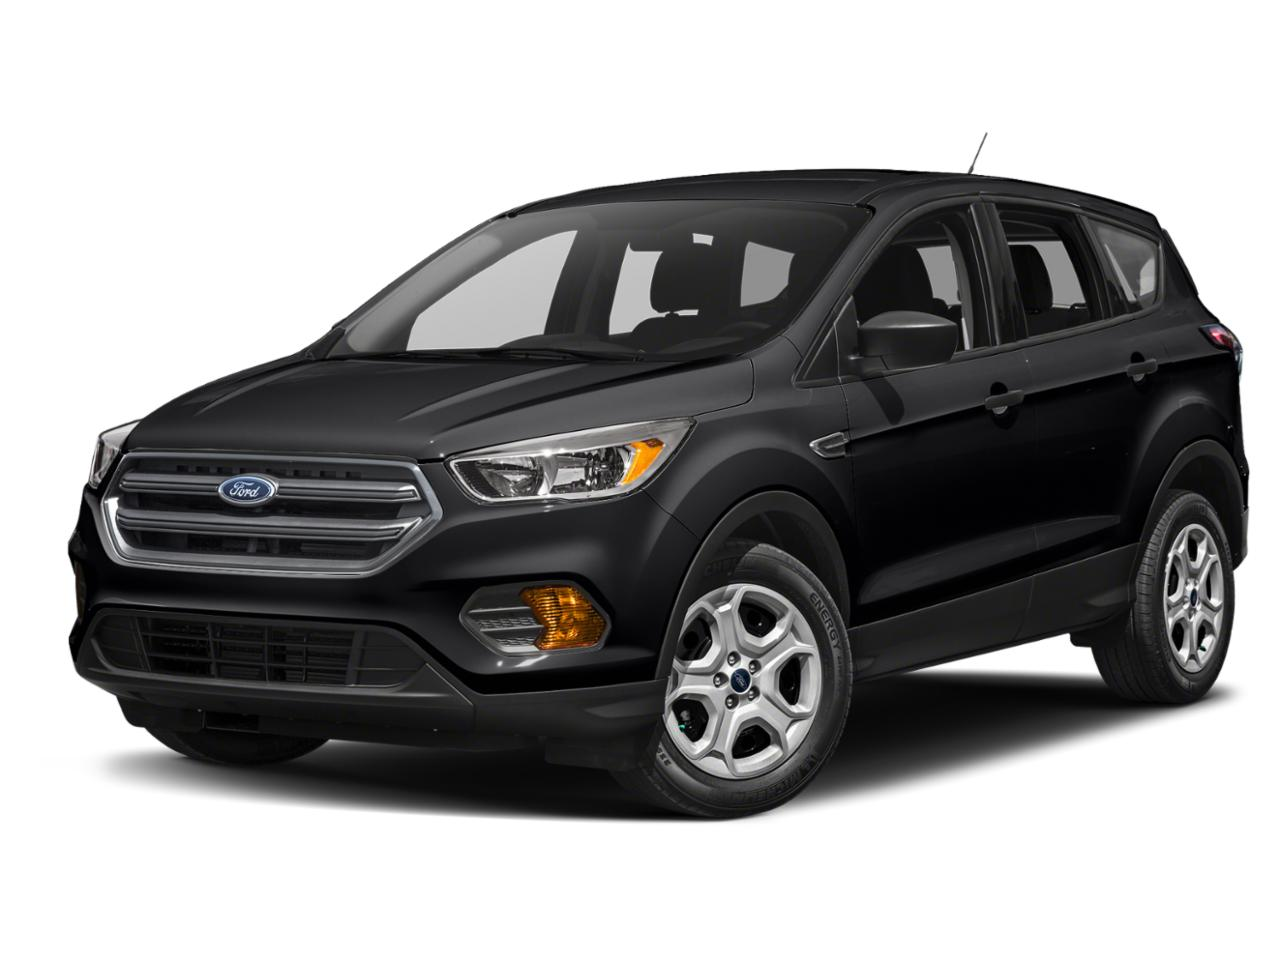 2019 Ford Escape Vehicle Photo in Pittsburgh, PA 15226